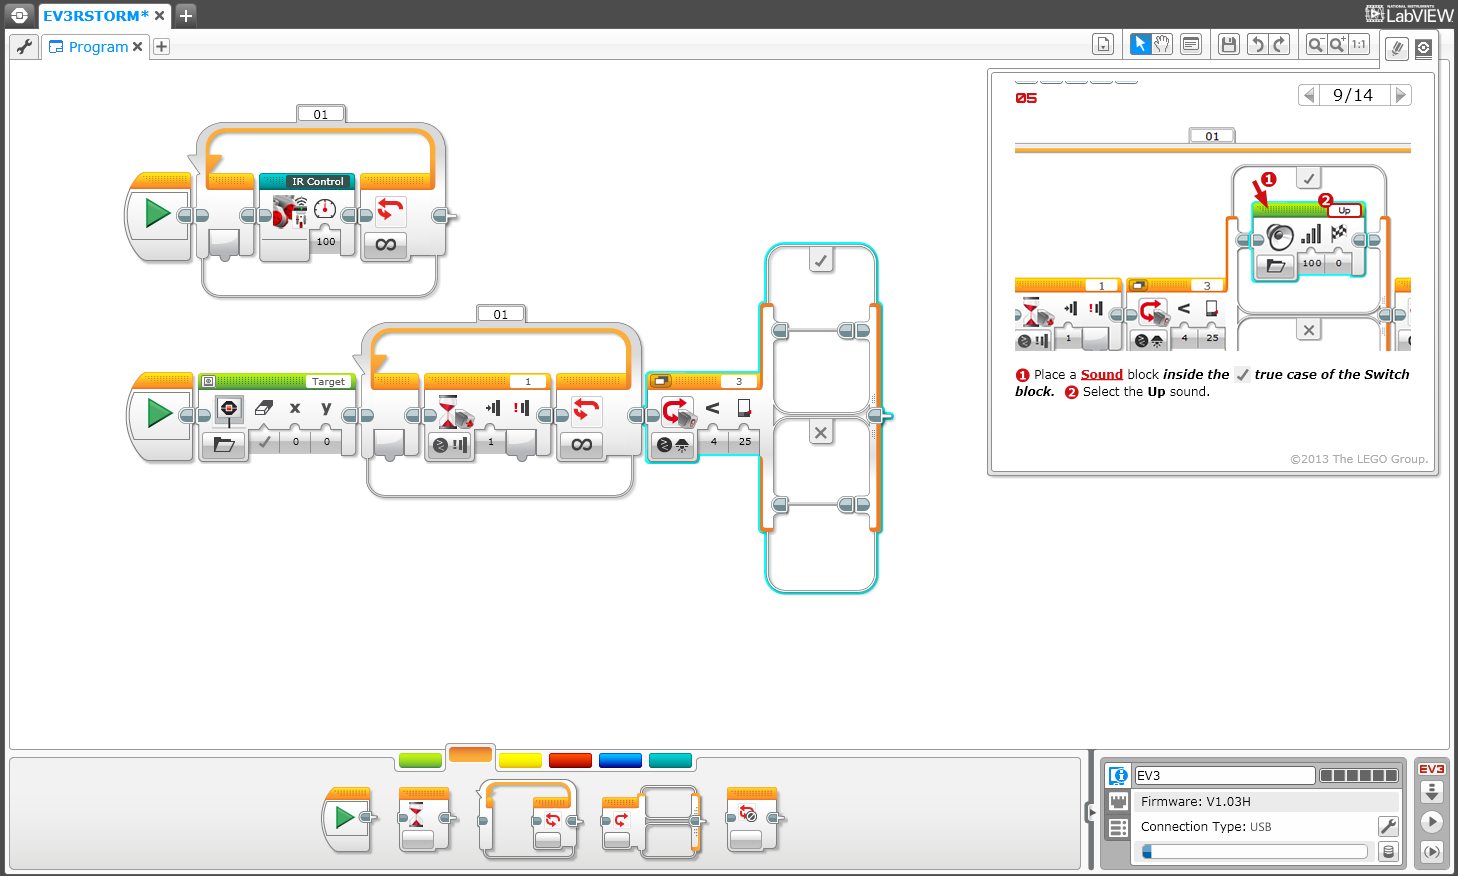 Following instructions to manually re-create one of the Ev3rstorm programs in the drag-and-drop EV3 programming environment.